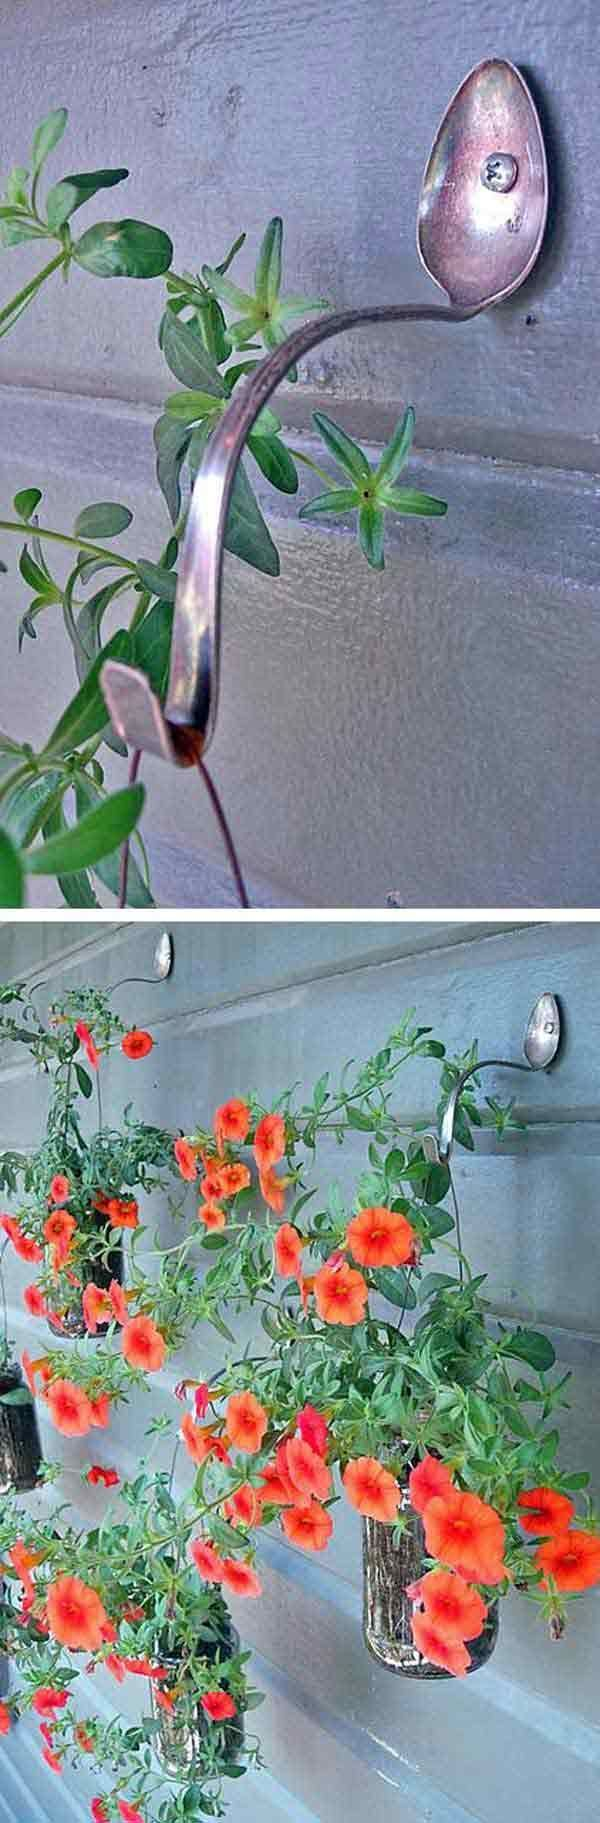 15 DIY How to Make Your Backyard Awesome Ideas 11